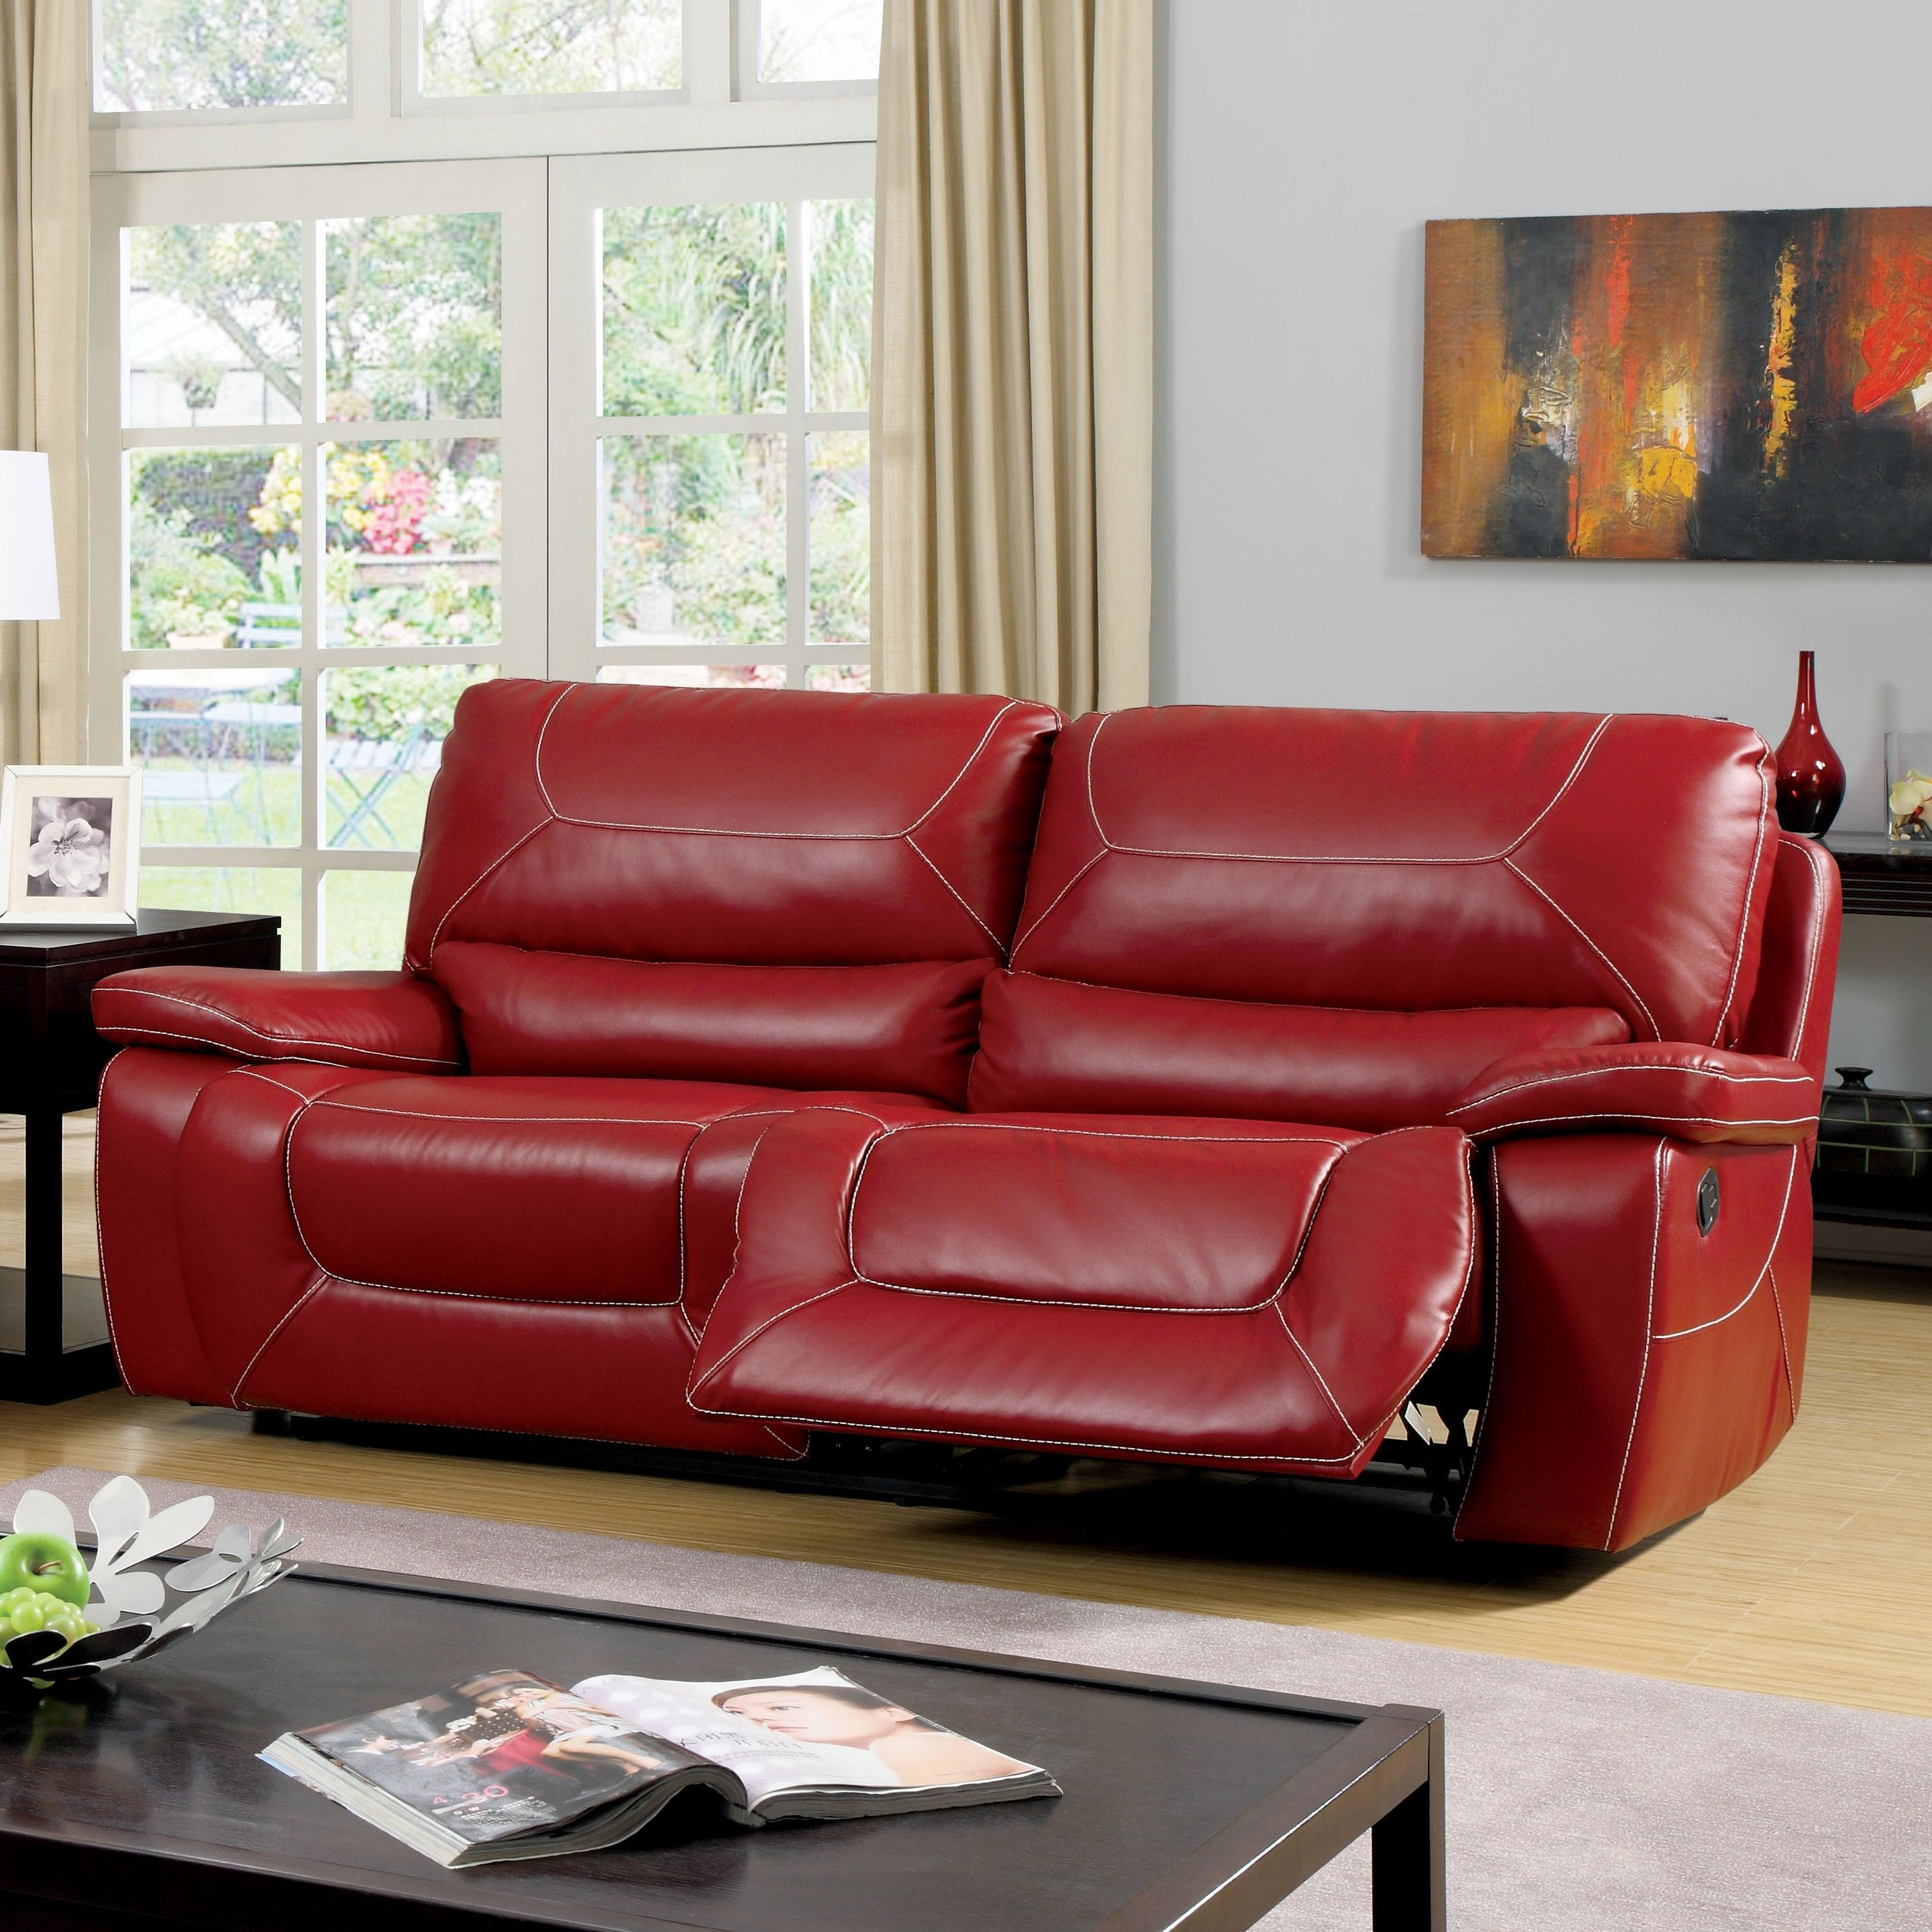 Dormont Reclining Sofa | Reclining Sofa, Living Rooms And Room Pertaining To Red Leather Reclining Sofas And Loveseats (Image 1 of 10)